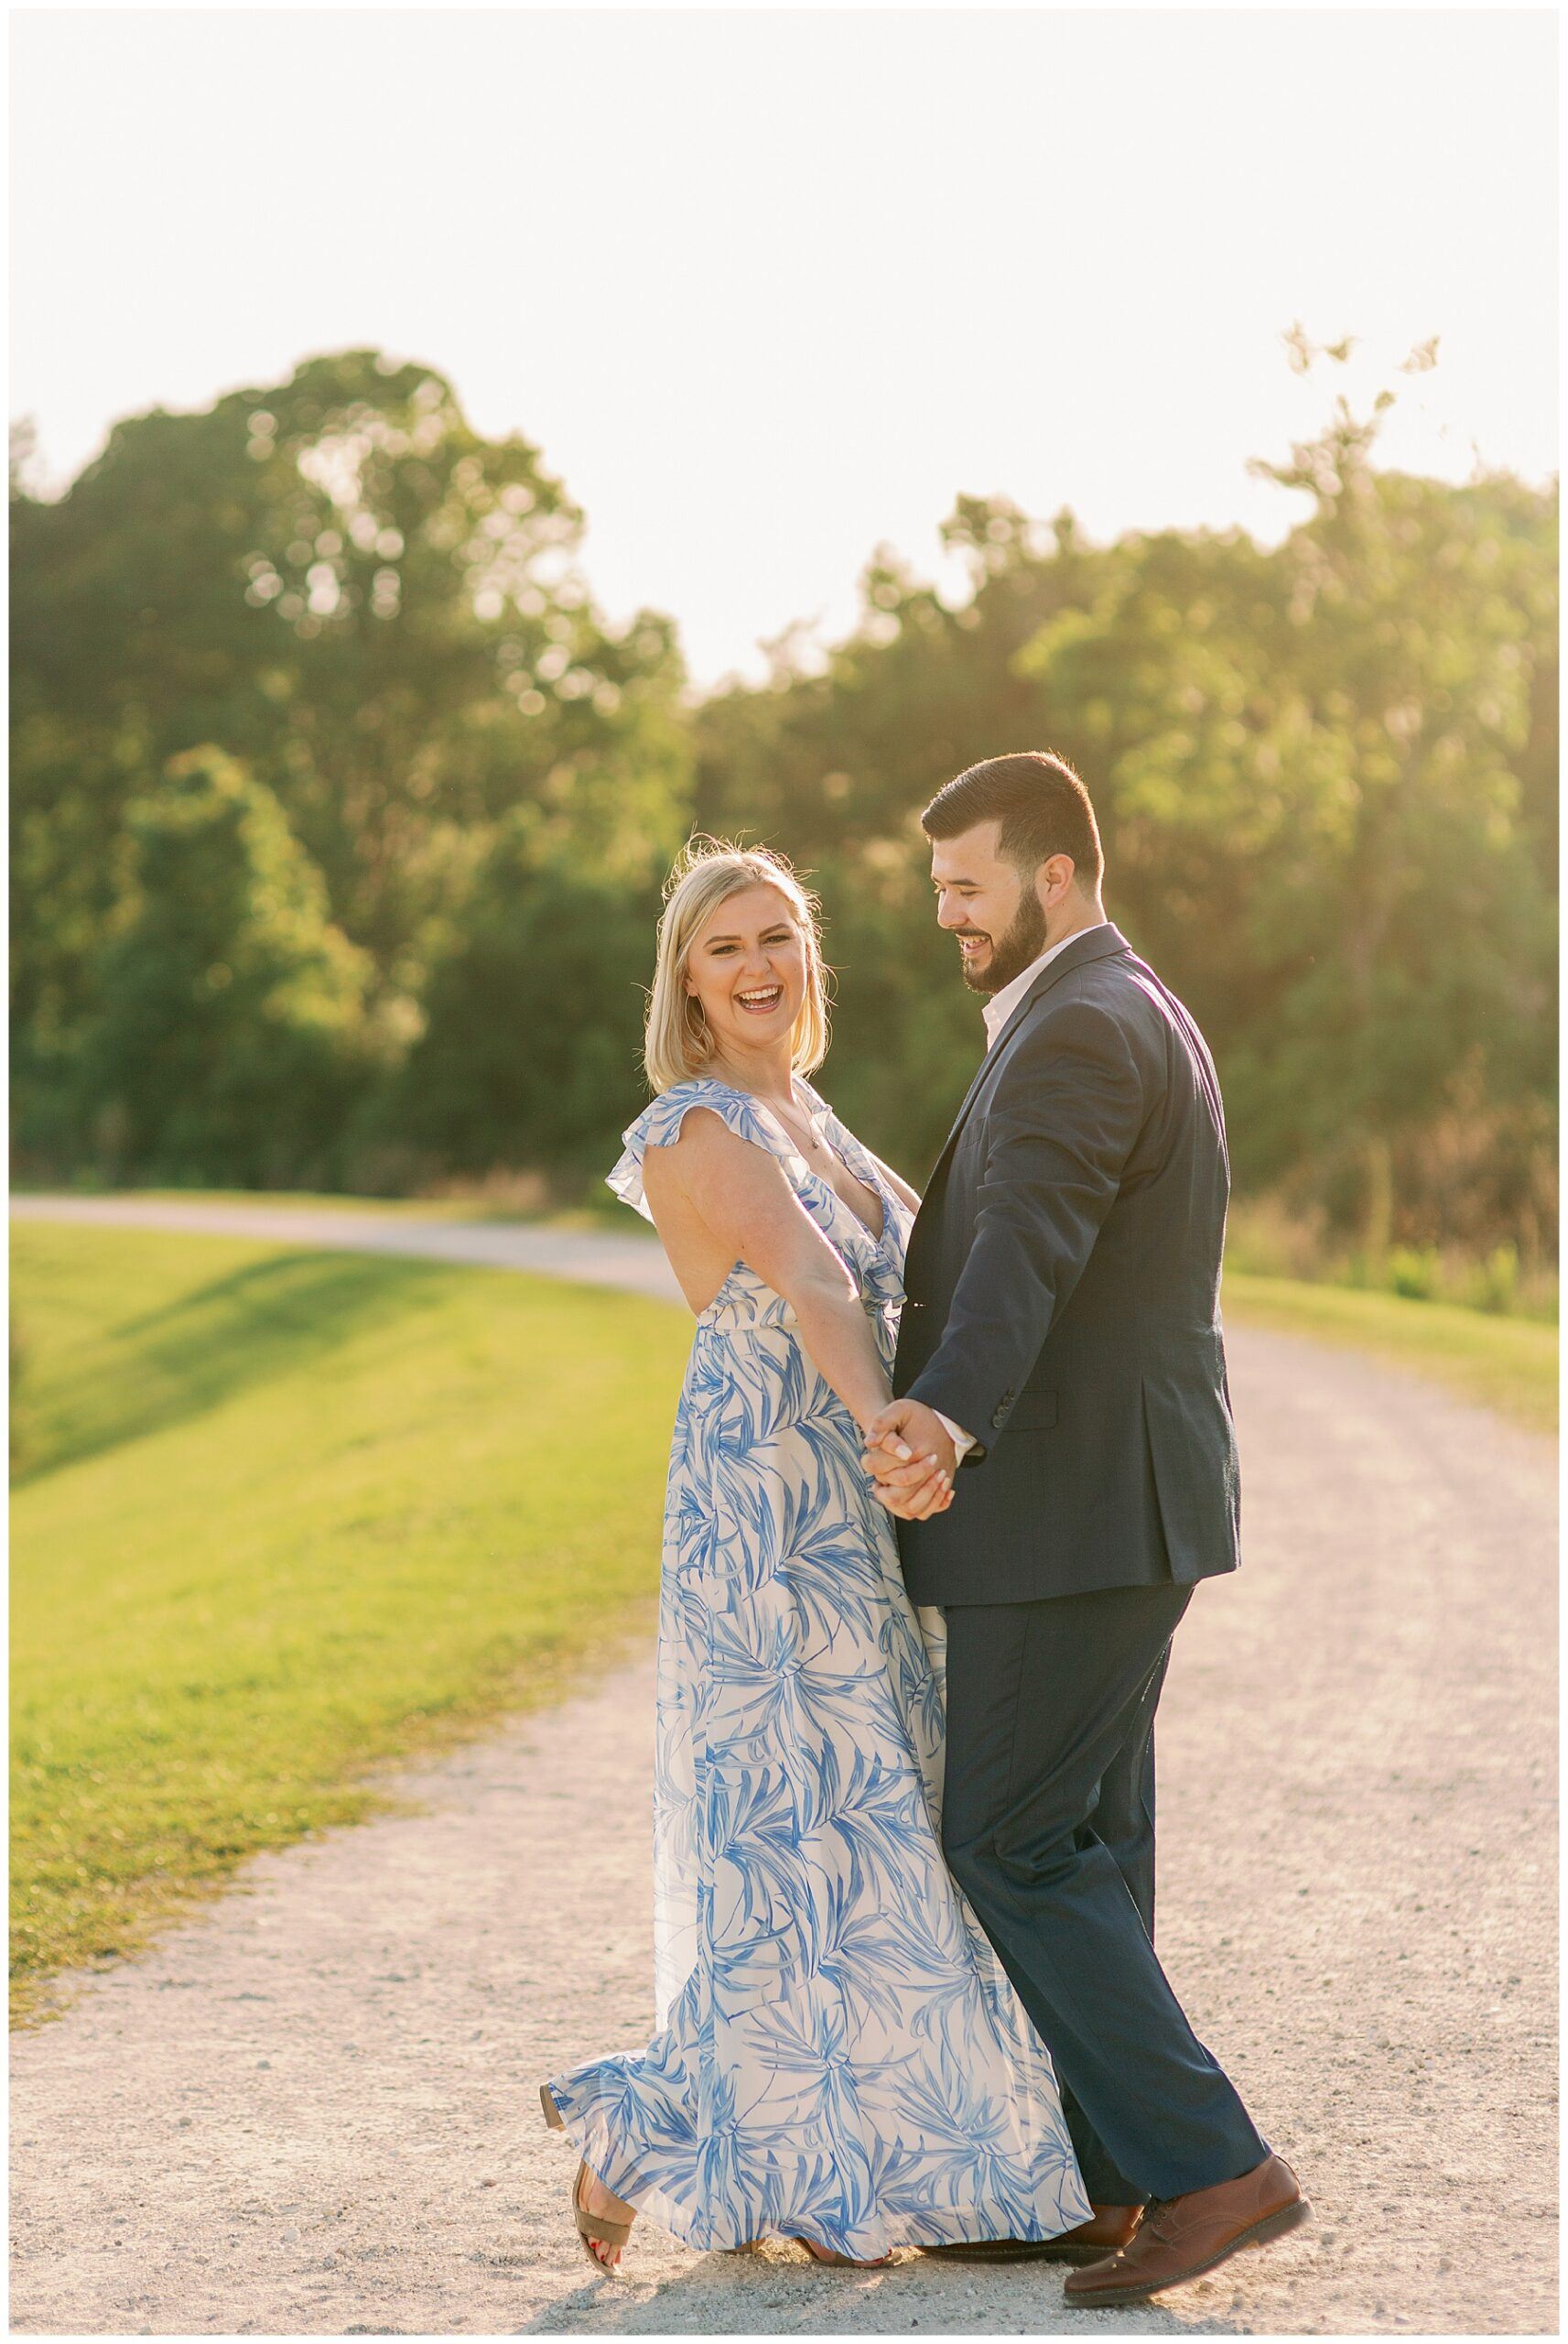 Guy and girl in blue formal wear dance on a dirt road in sun soaked photo